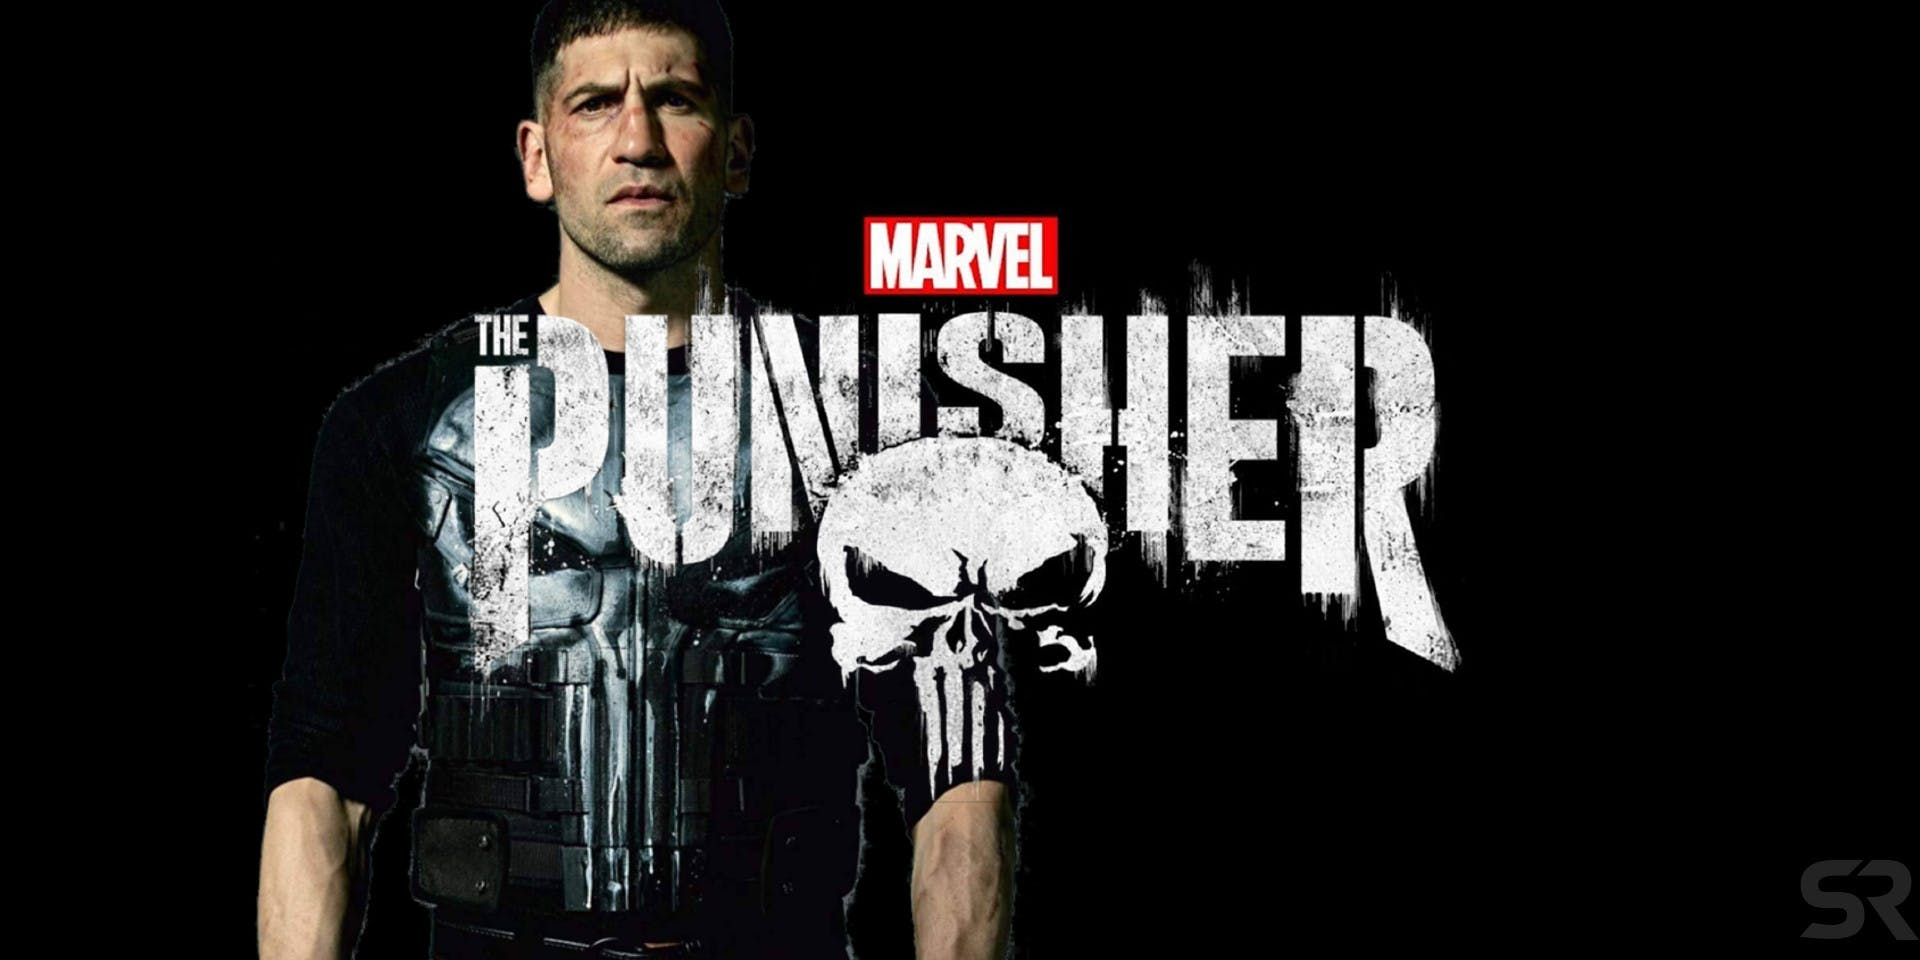 Marvel's The Punisher Season 3 Cancelled by Netflix